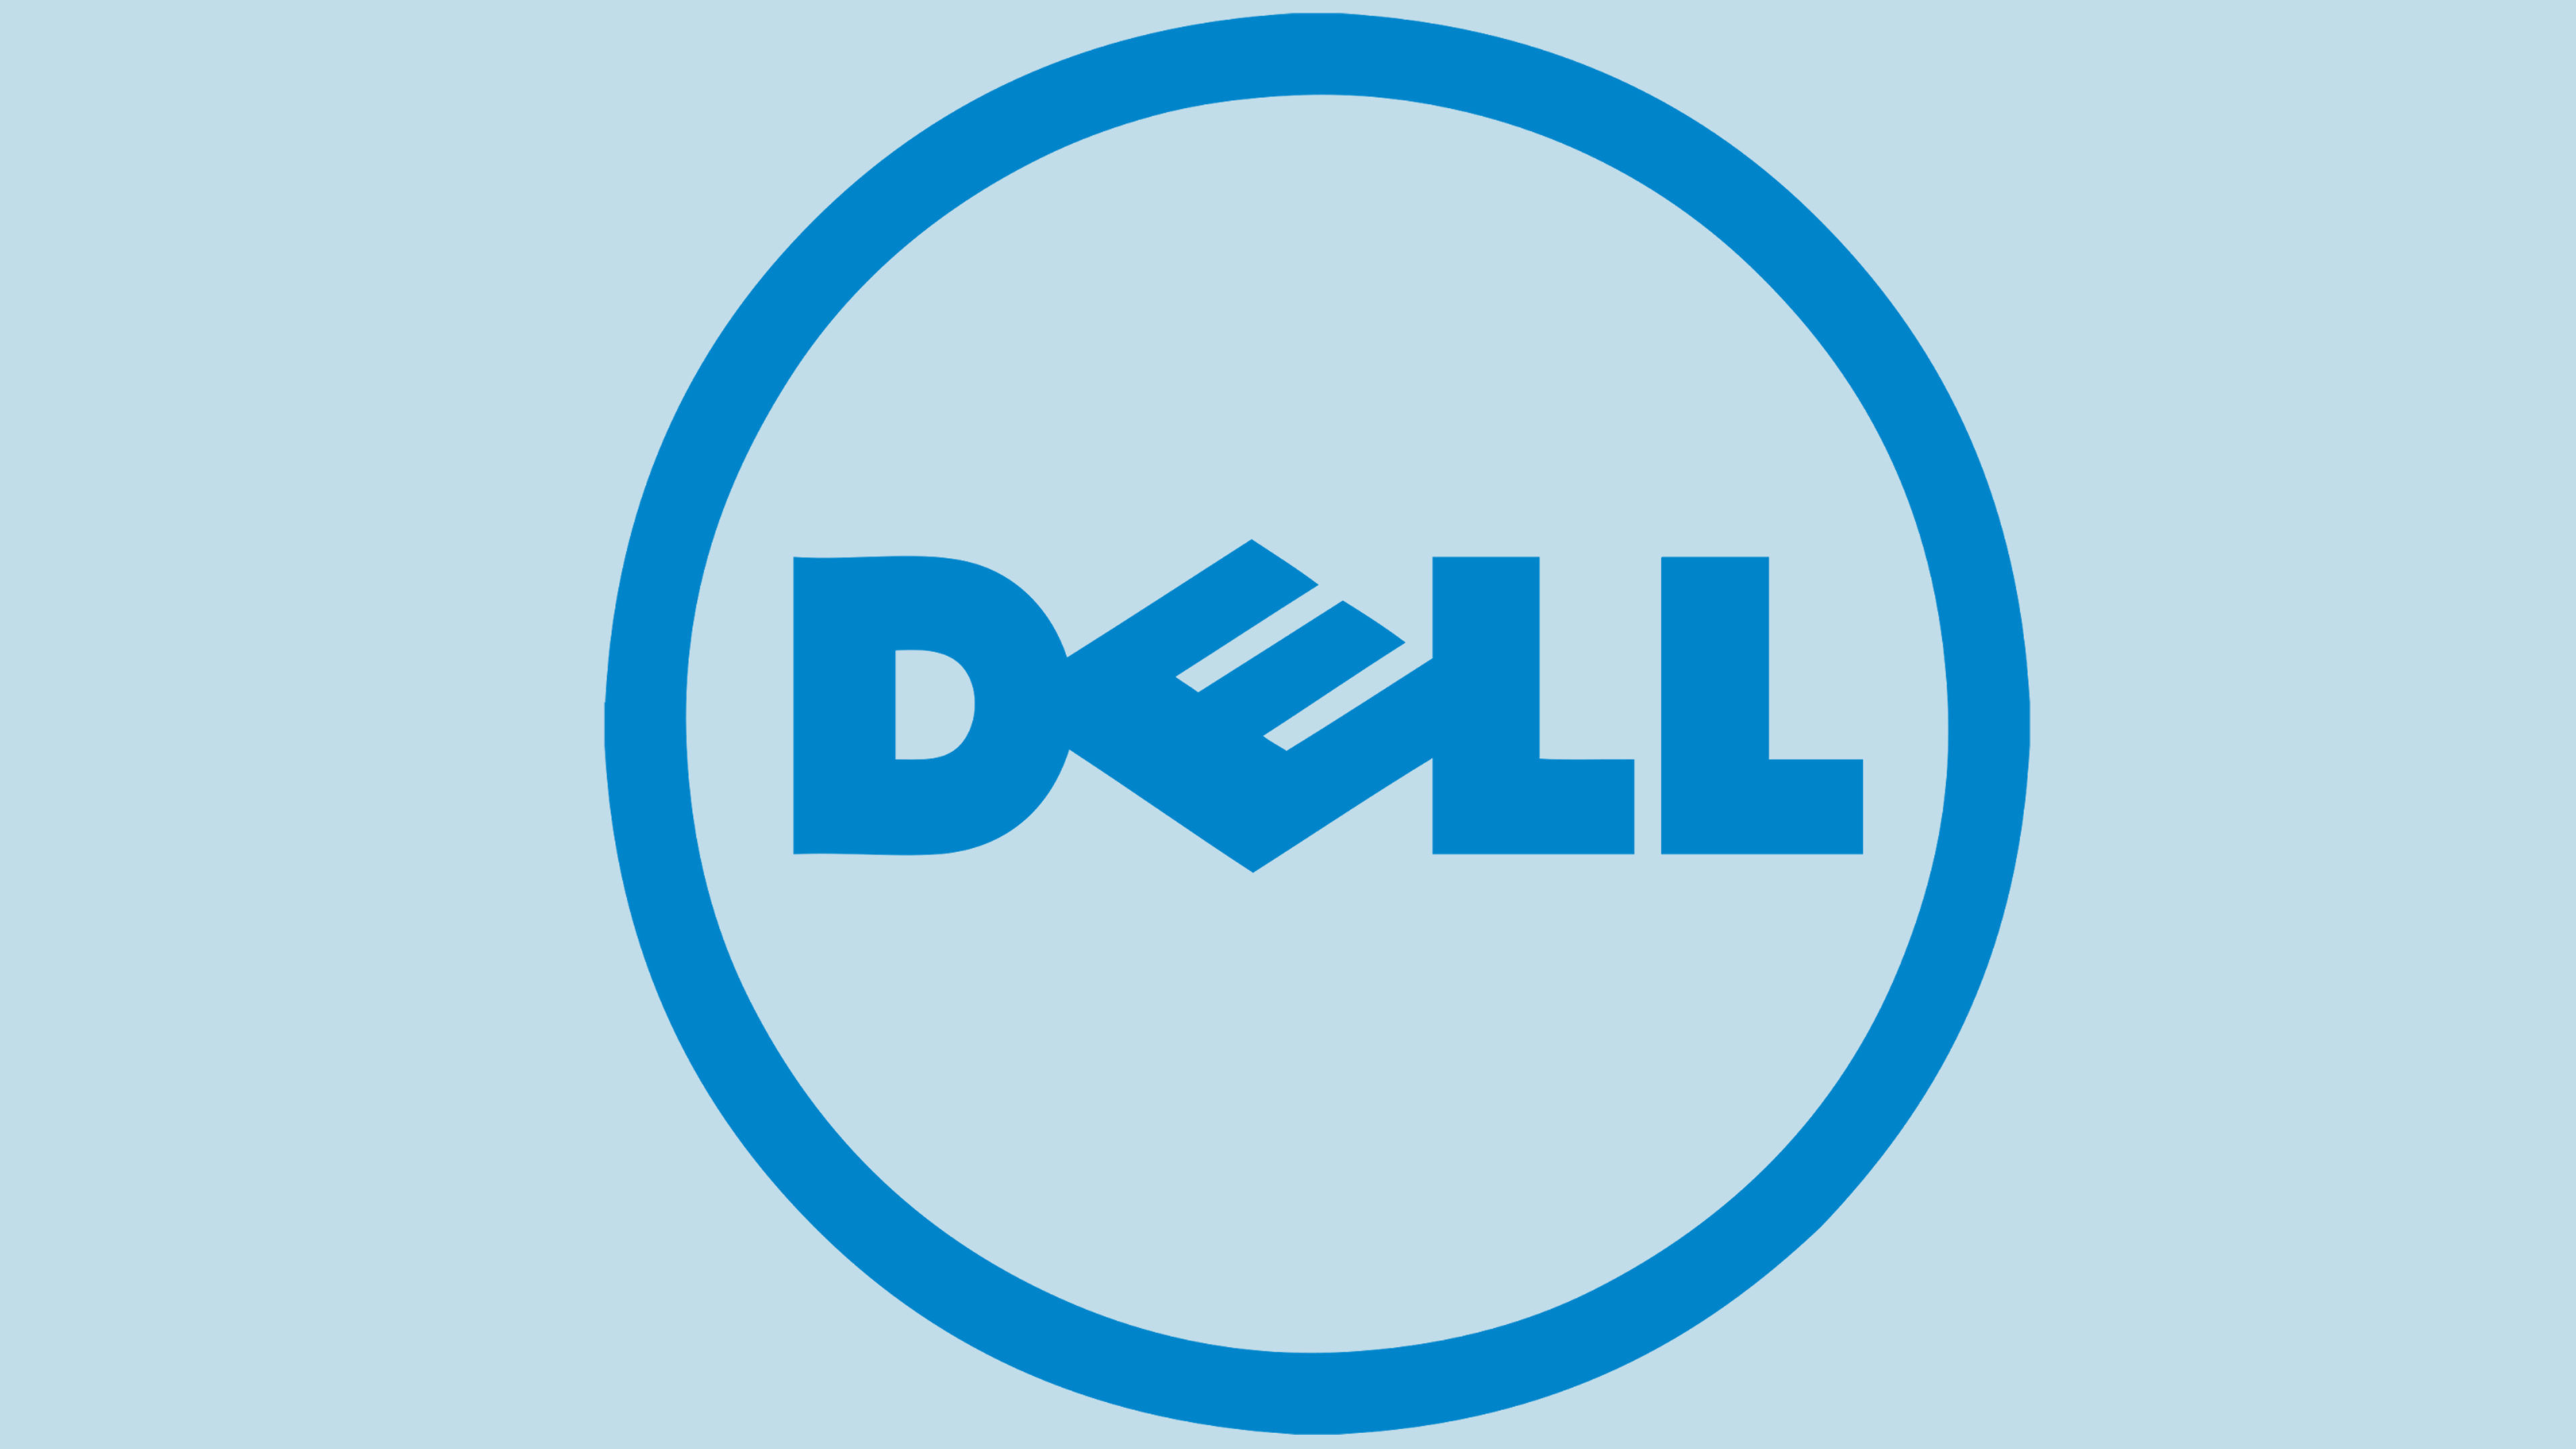 dell computers wallpaper logo - photo #29